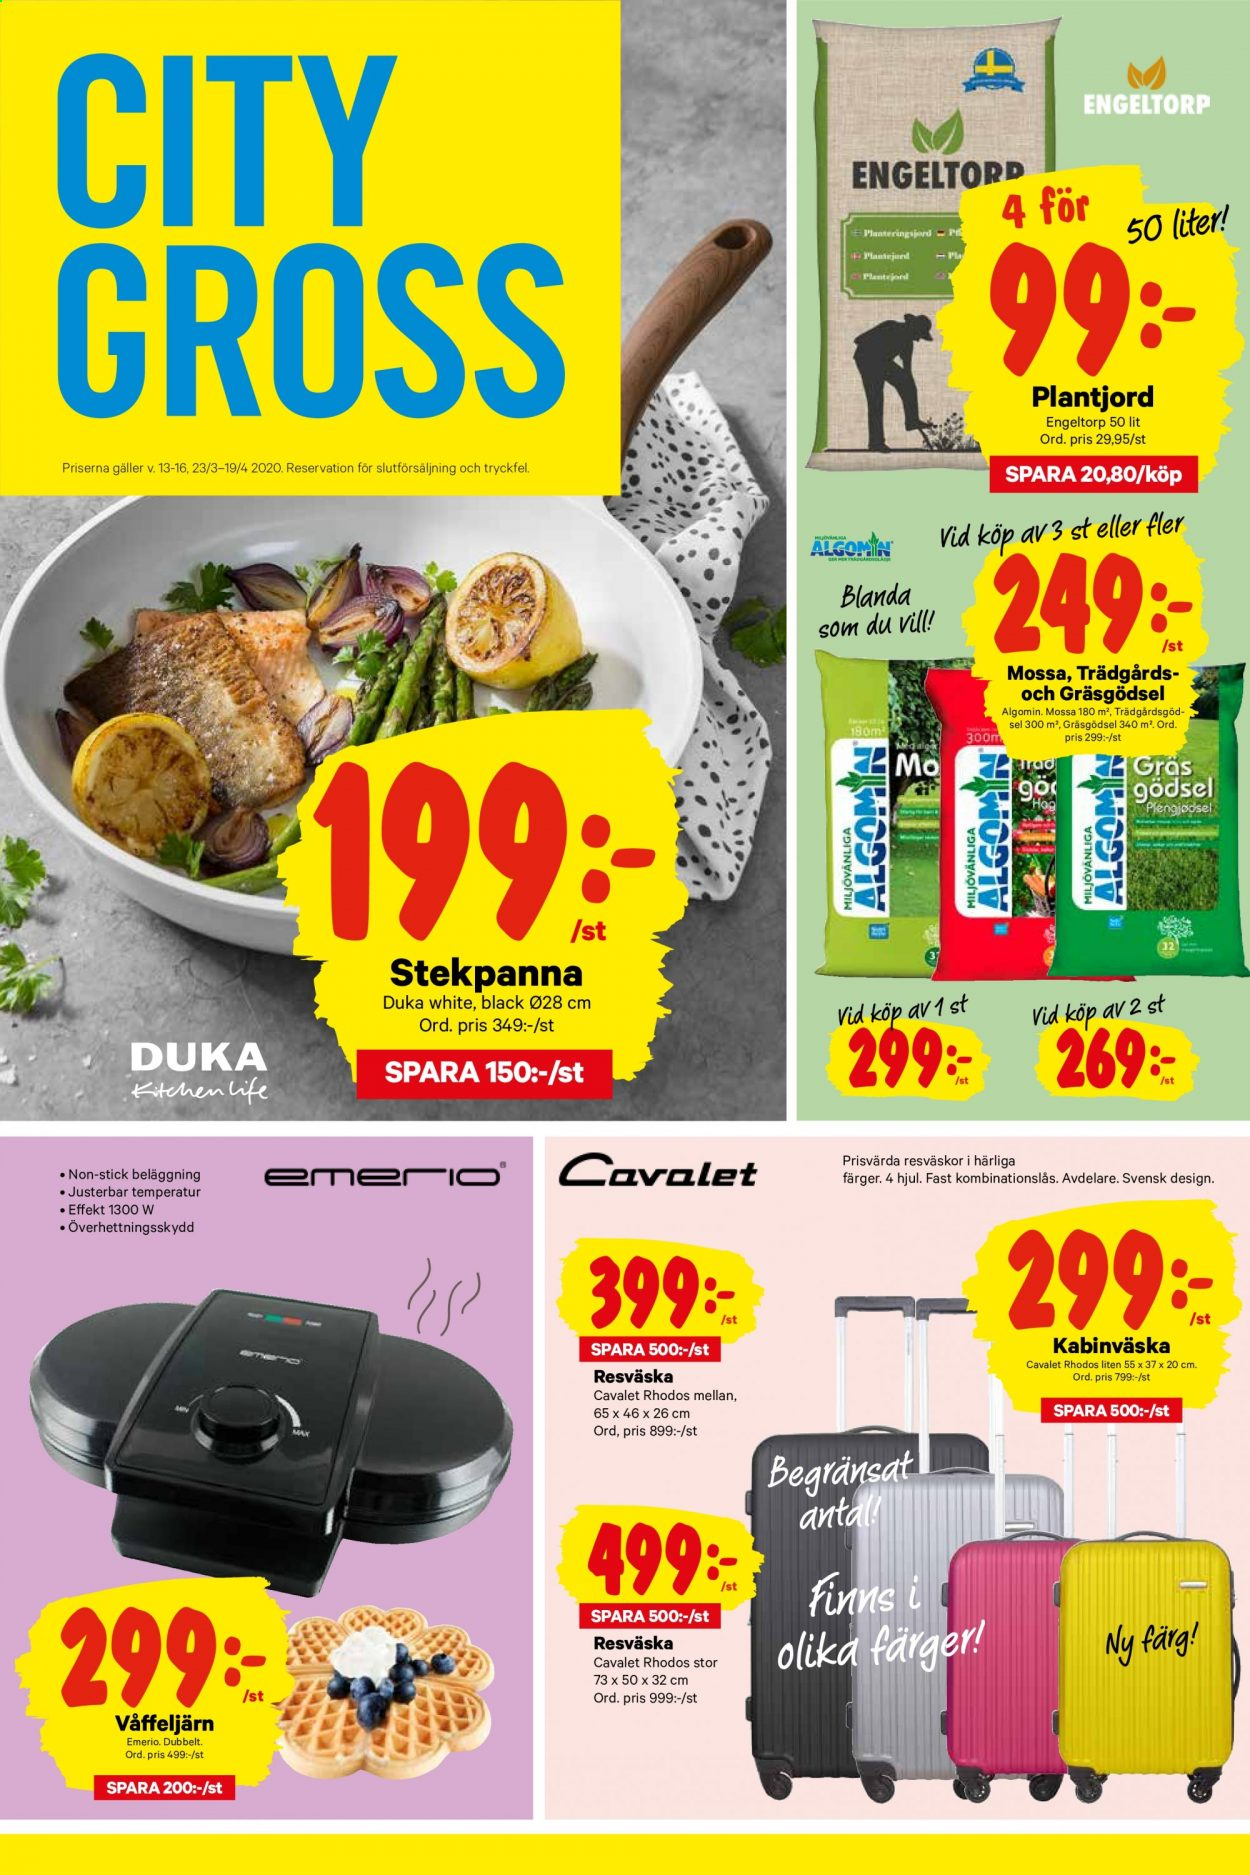 City Gross reklamblad - 22/3 2020 - 22/3 2020. Sida 4.